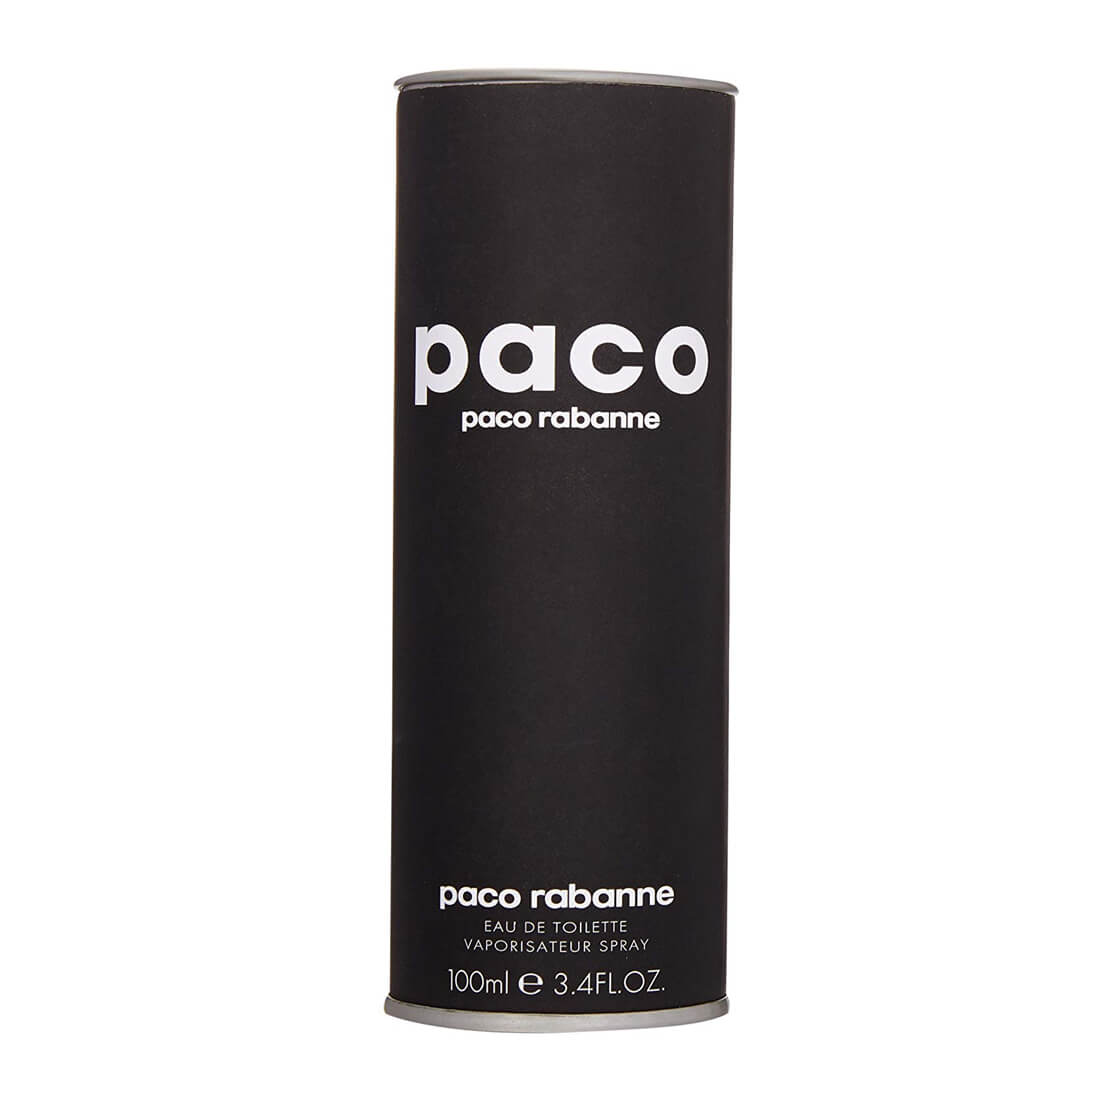 Paco Rabanne PACO Eau De Toilette For Unisex 100ml